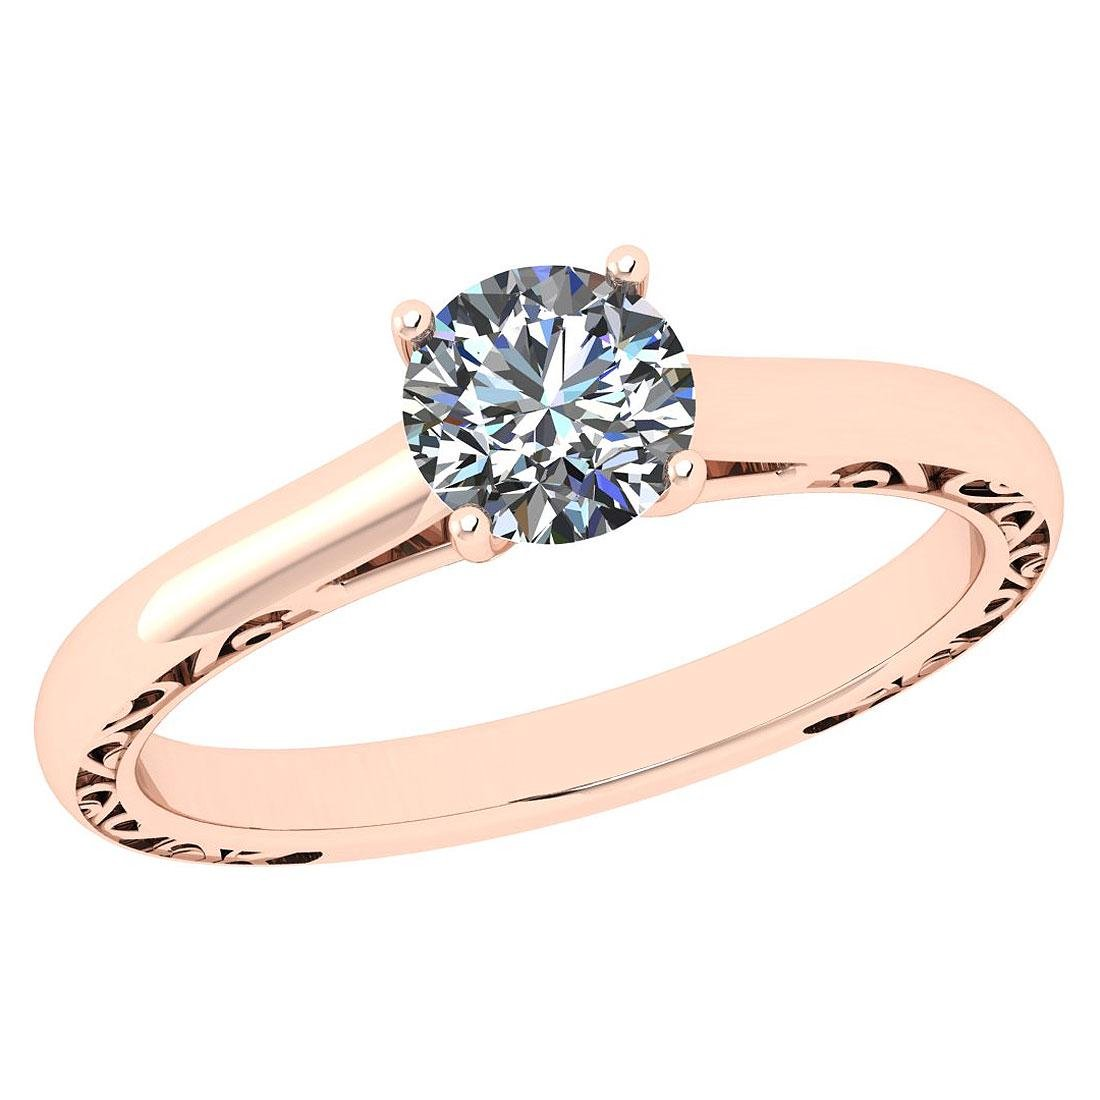 Certified Round 0.91 CTW G/I1 Diamond Solitaire Ring In